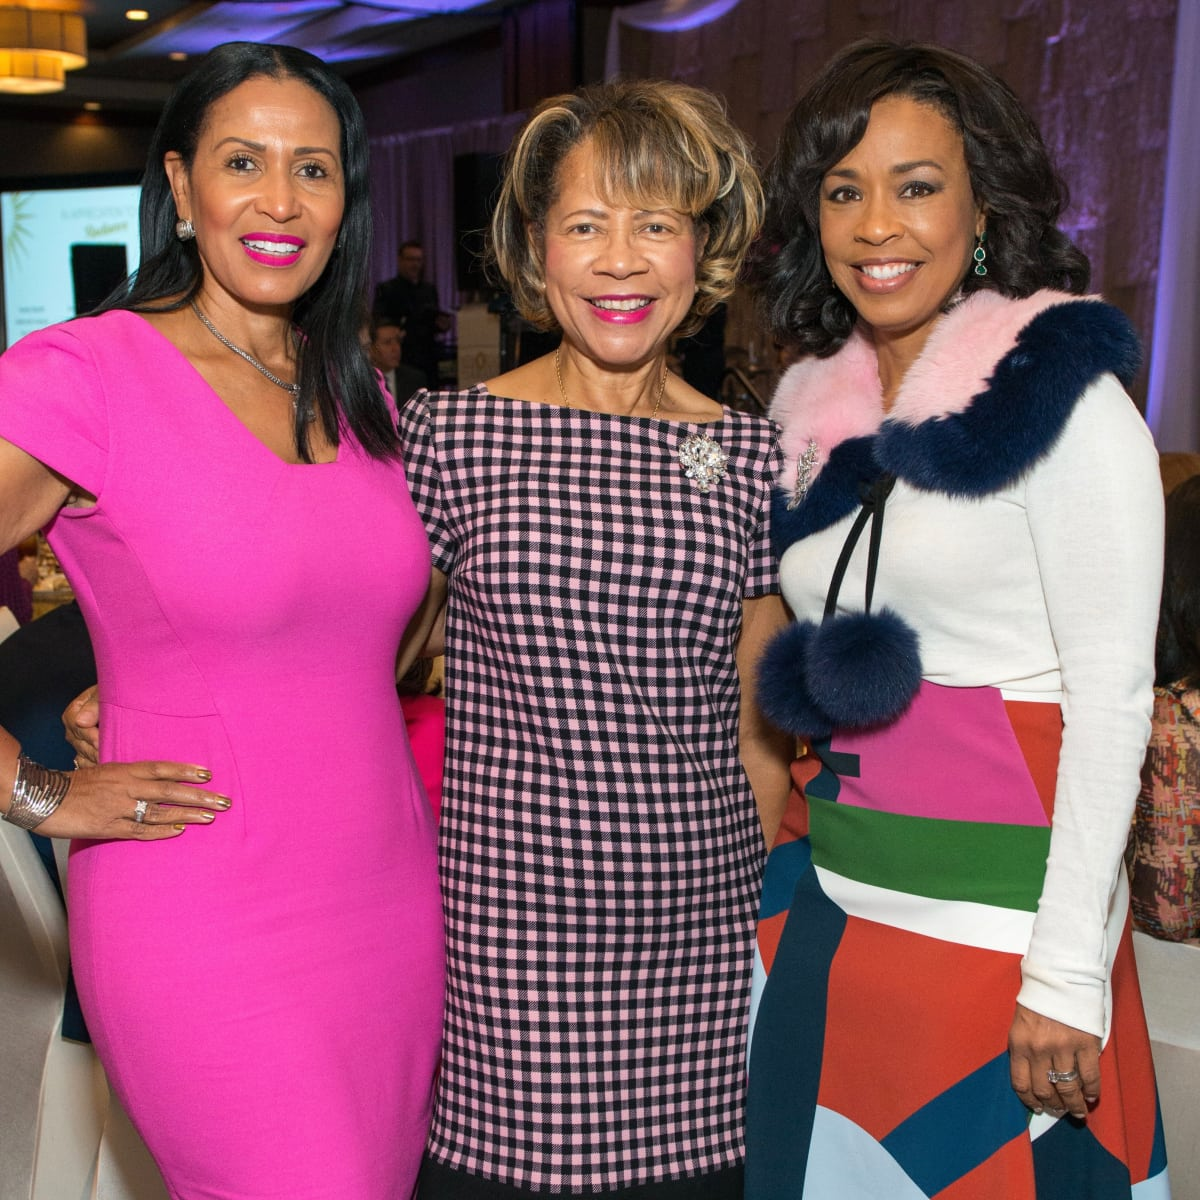 Memorial Hermann Razzle Dazzle luncheon, Jacqueline Kinloch, Merele Yarborough, Gina Gaston